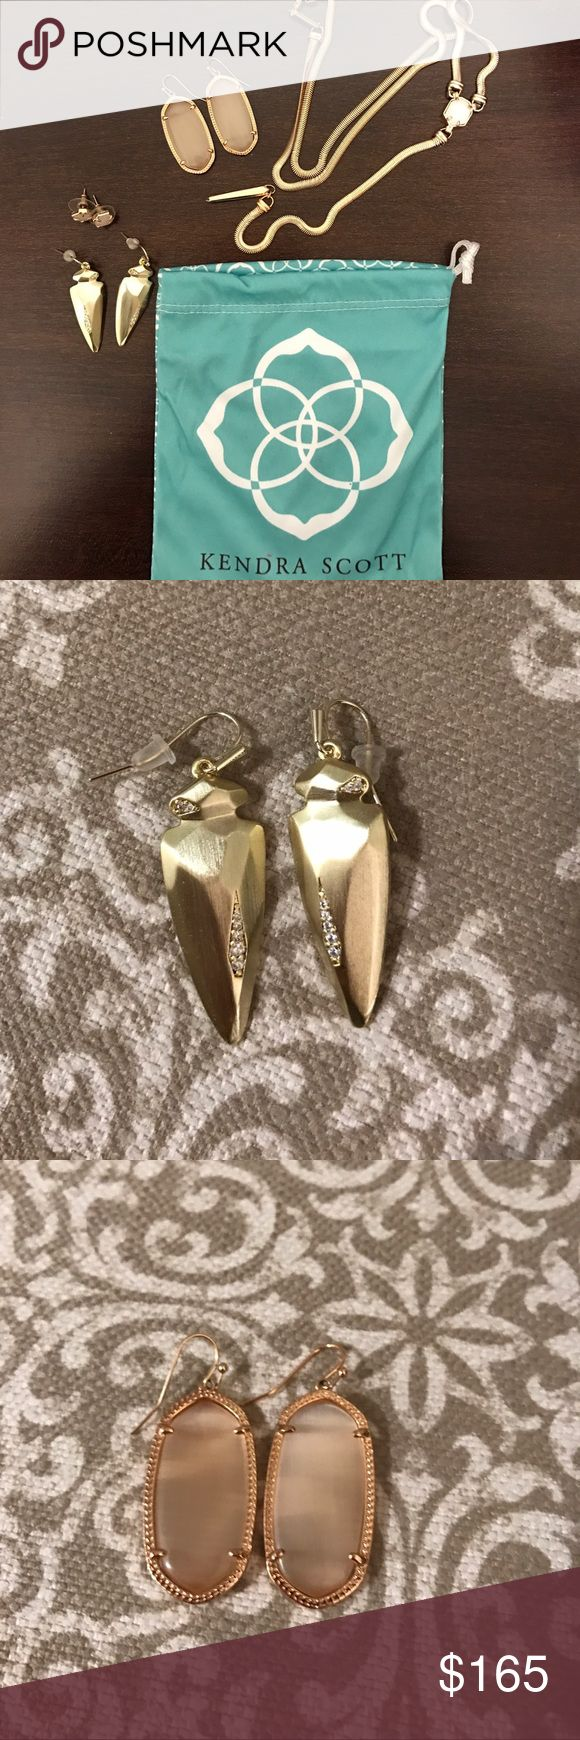 Kendra Scott Lot (5 Items) Necklace & Earrings Lot - All Authentic! Valued at $350+. Includes 4 pairs of earrings & 1 necklace.  - Everything shows no sign of wear, no tarnishing. Pics zoomed in to show detail.  - Starla necklace rose gold & Iridescent drusy ($110). Logan earrings rose gold & Iridescent drusy ($65). Elle earrings rose gold & peach cat eye (no earring backs $55). Stephanie earrings gold ($75). Madina earrings gold ($50). 1 KS dust bag.   🚫🚫🚫 NO TRADES.  ⭐️⭐️⭐️ TOP RATED…